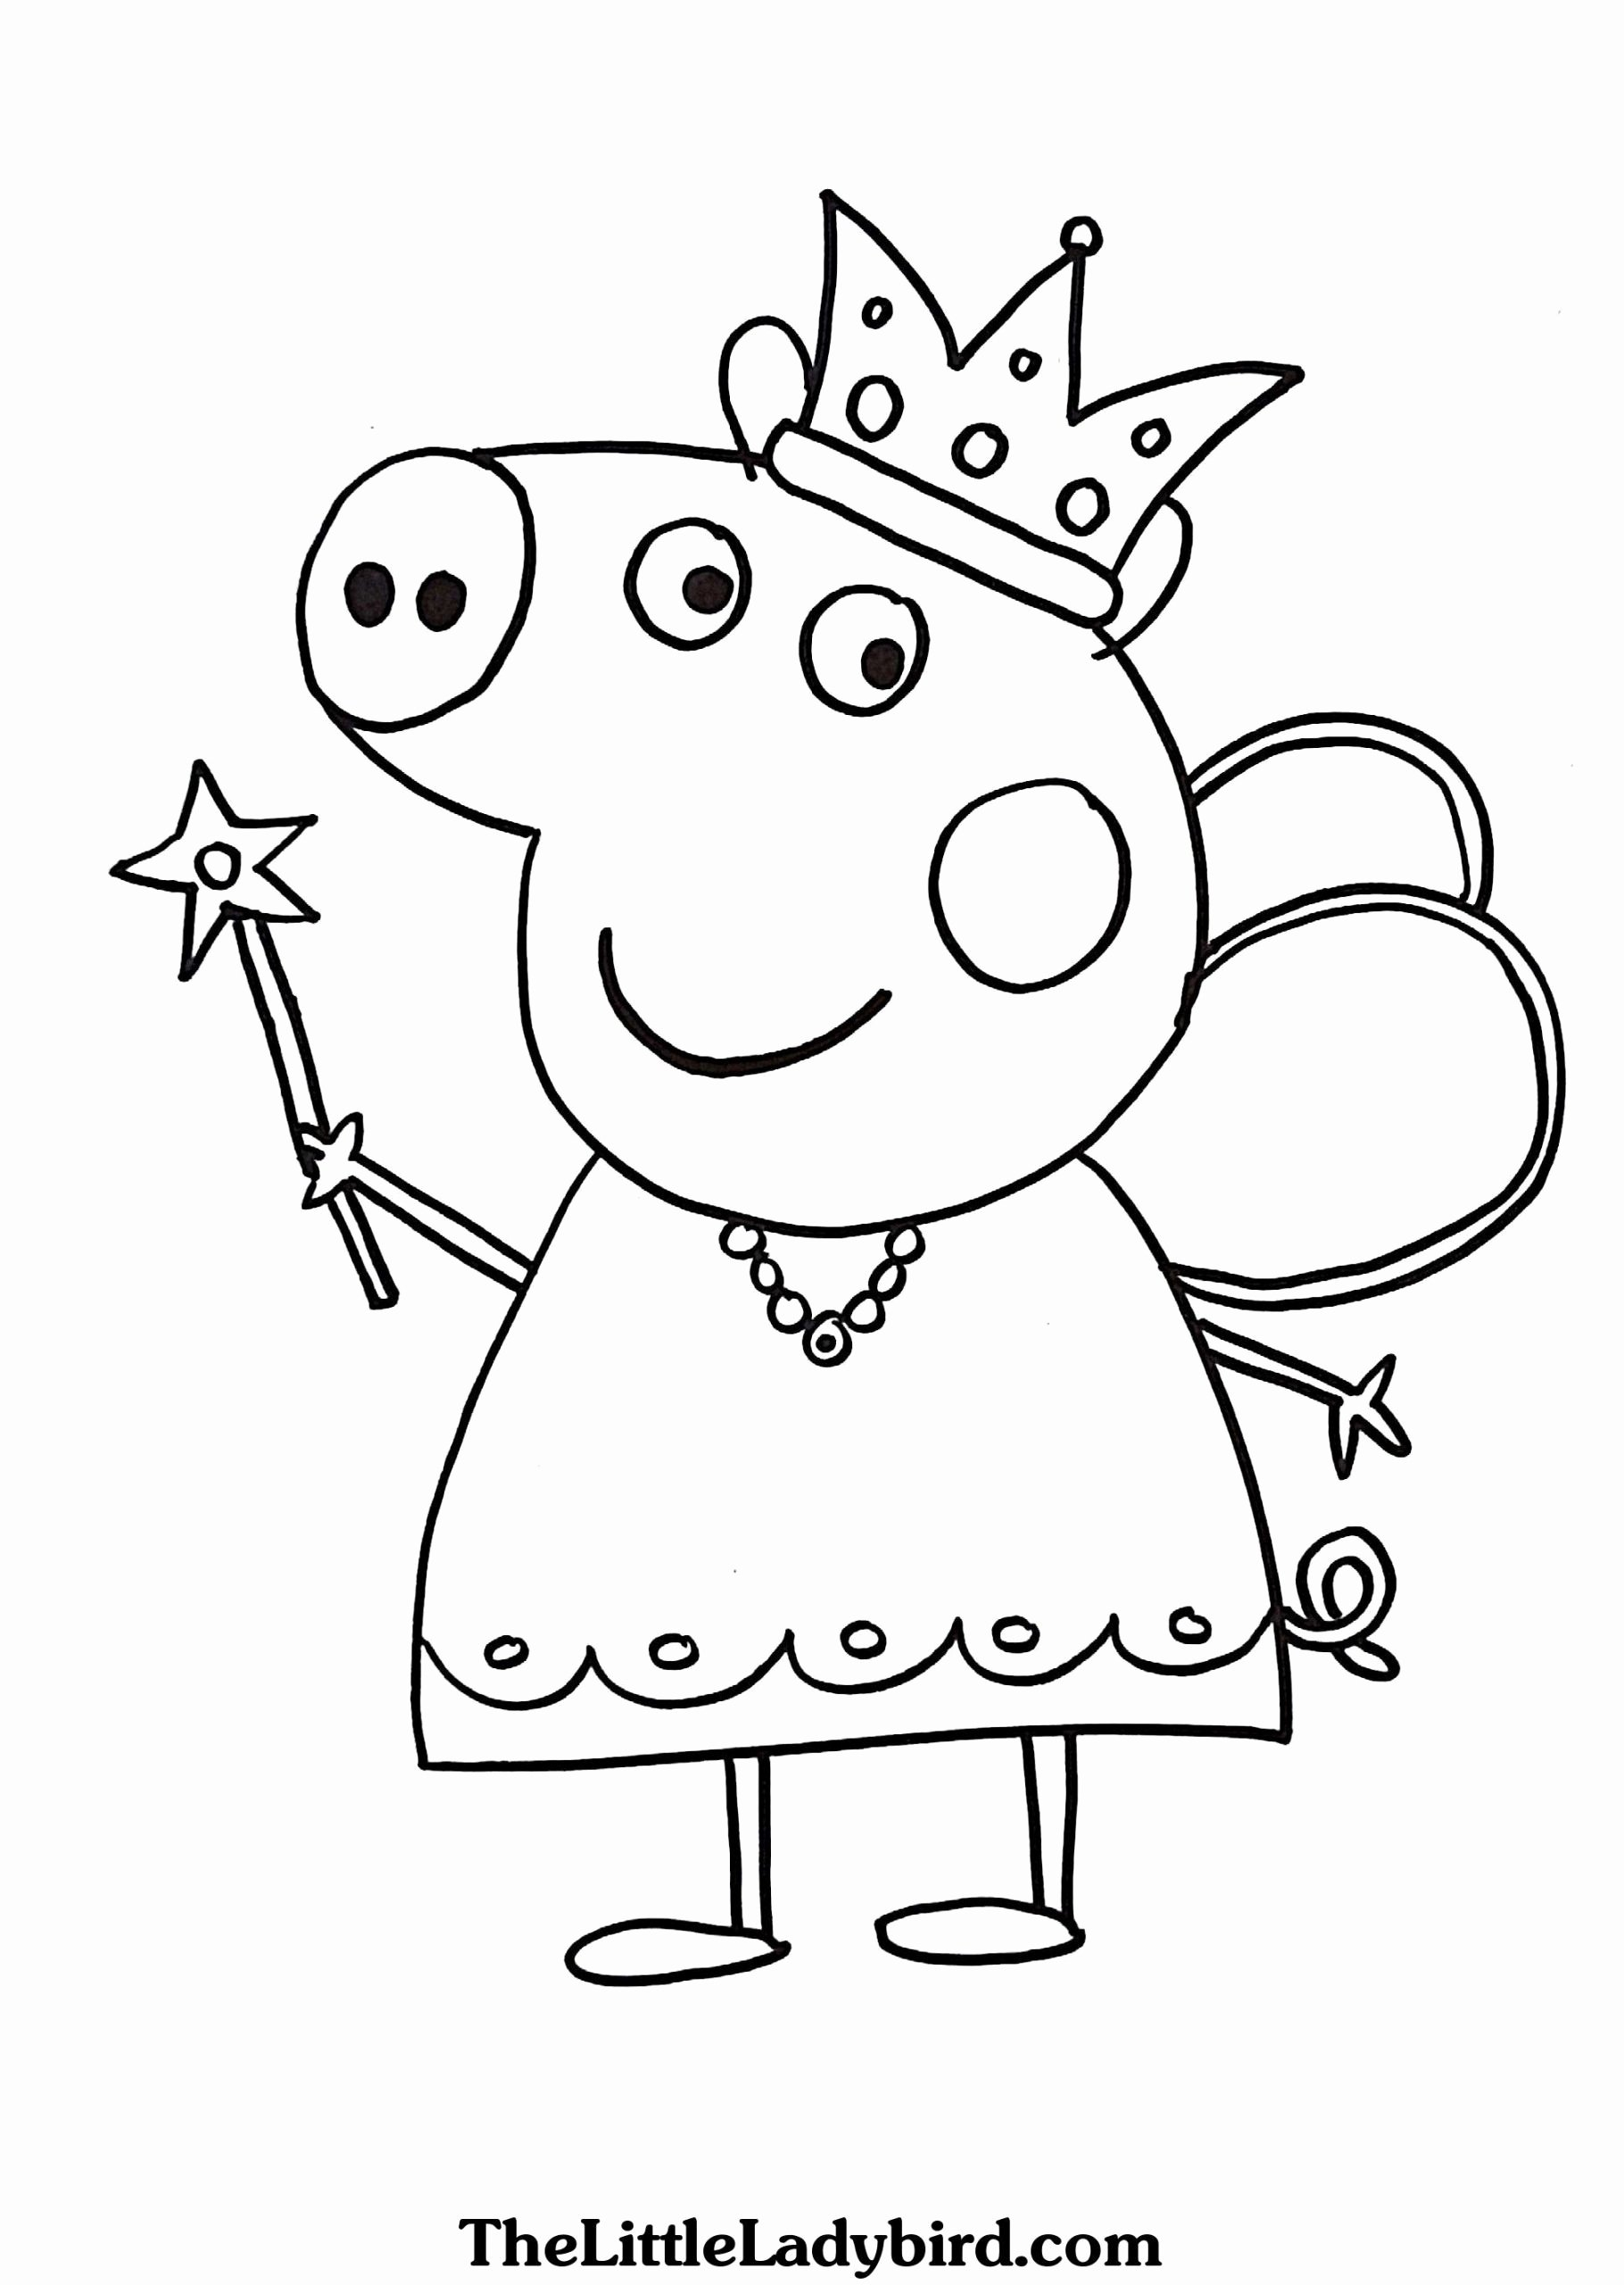 Free Printable Coloring Worksheets for Preschoolers Ideas Free Printable Coloring Pages for Preschoolers Firstay